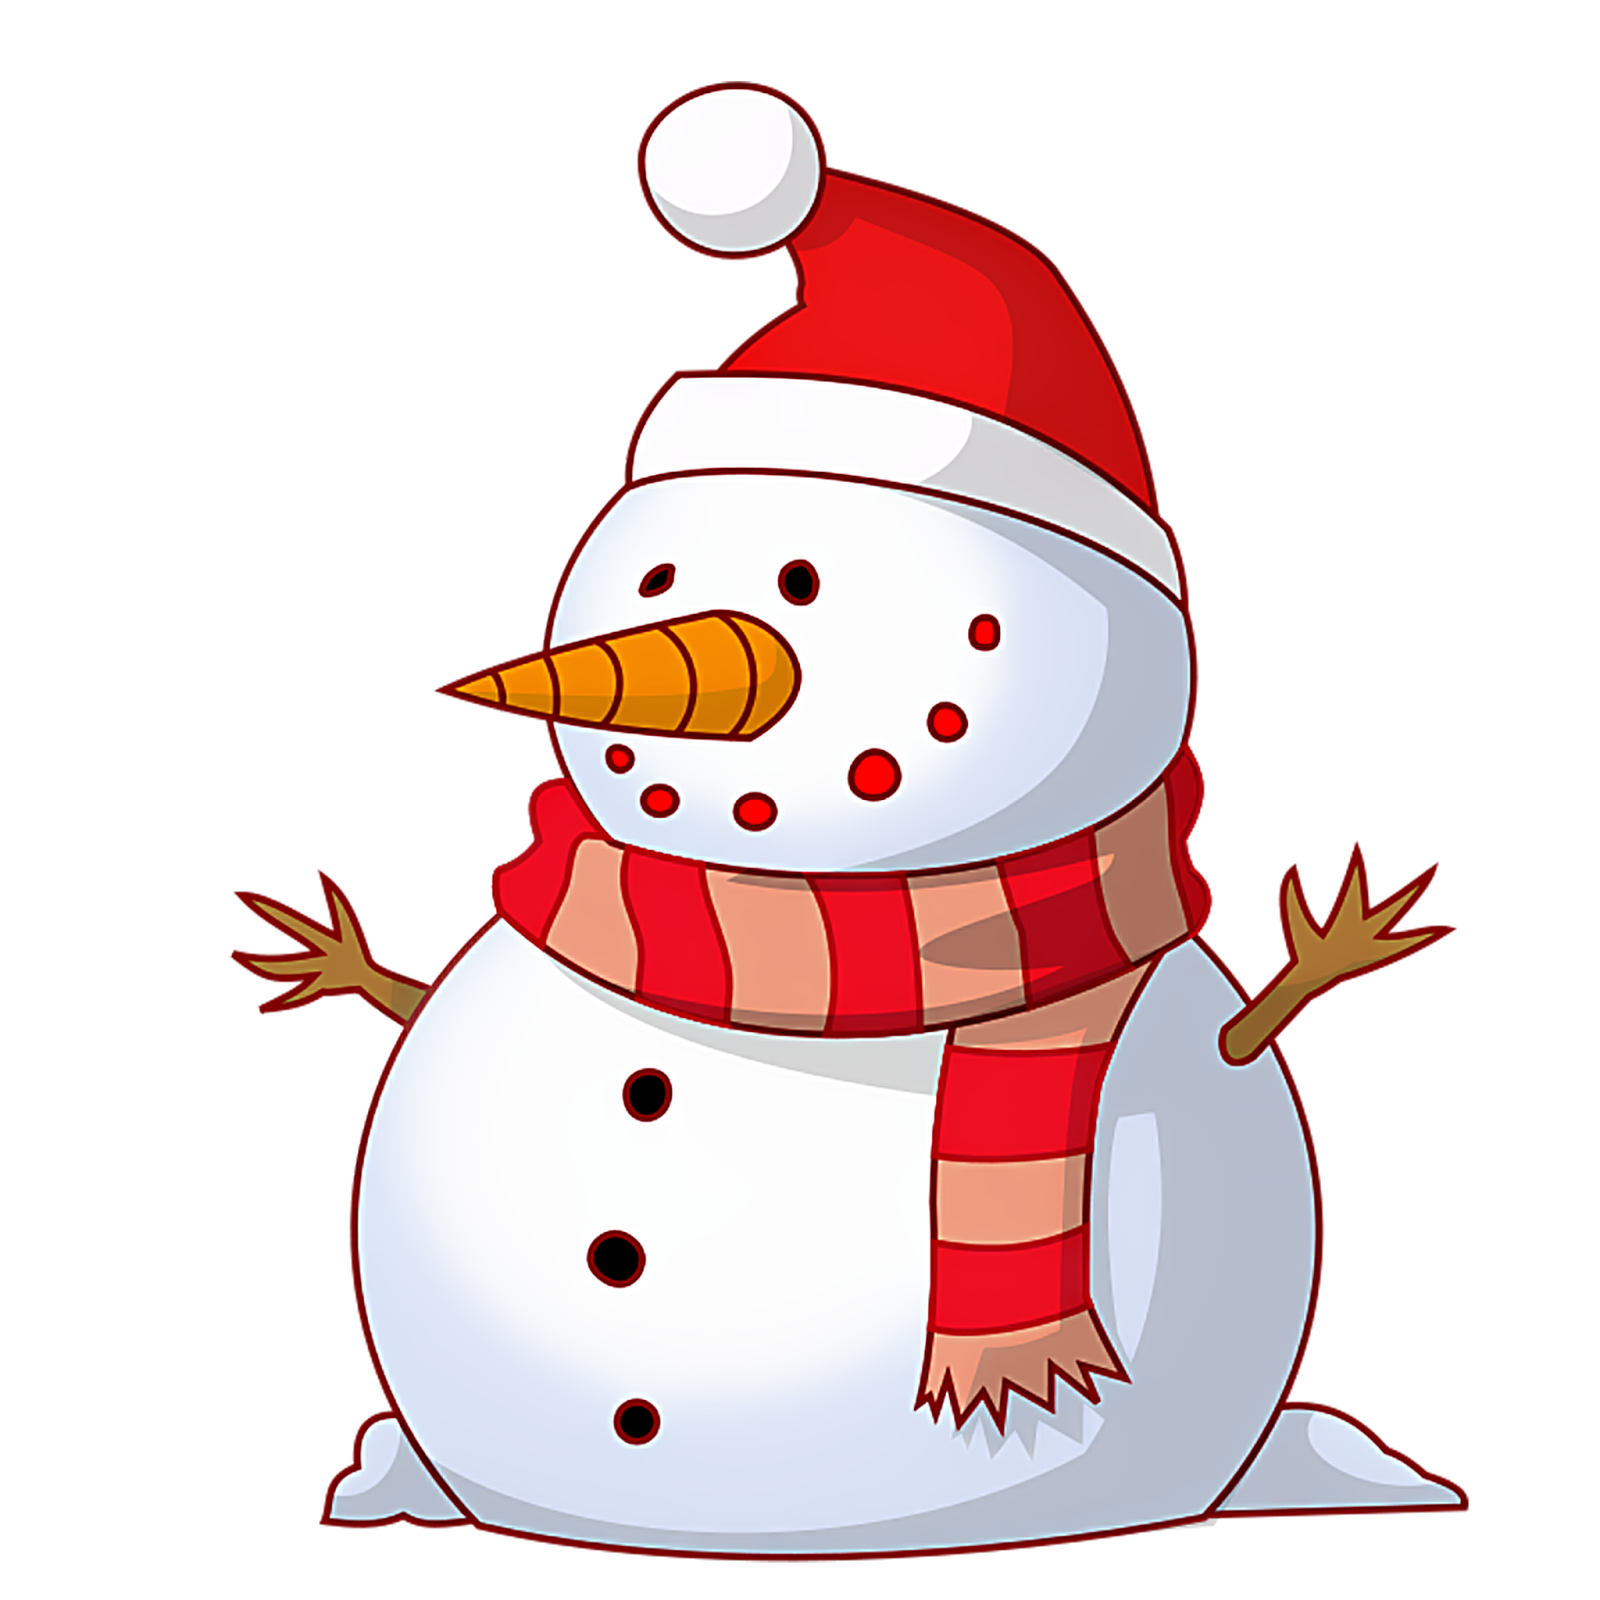 Xmas clipartfest of. Christmas clipart free download